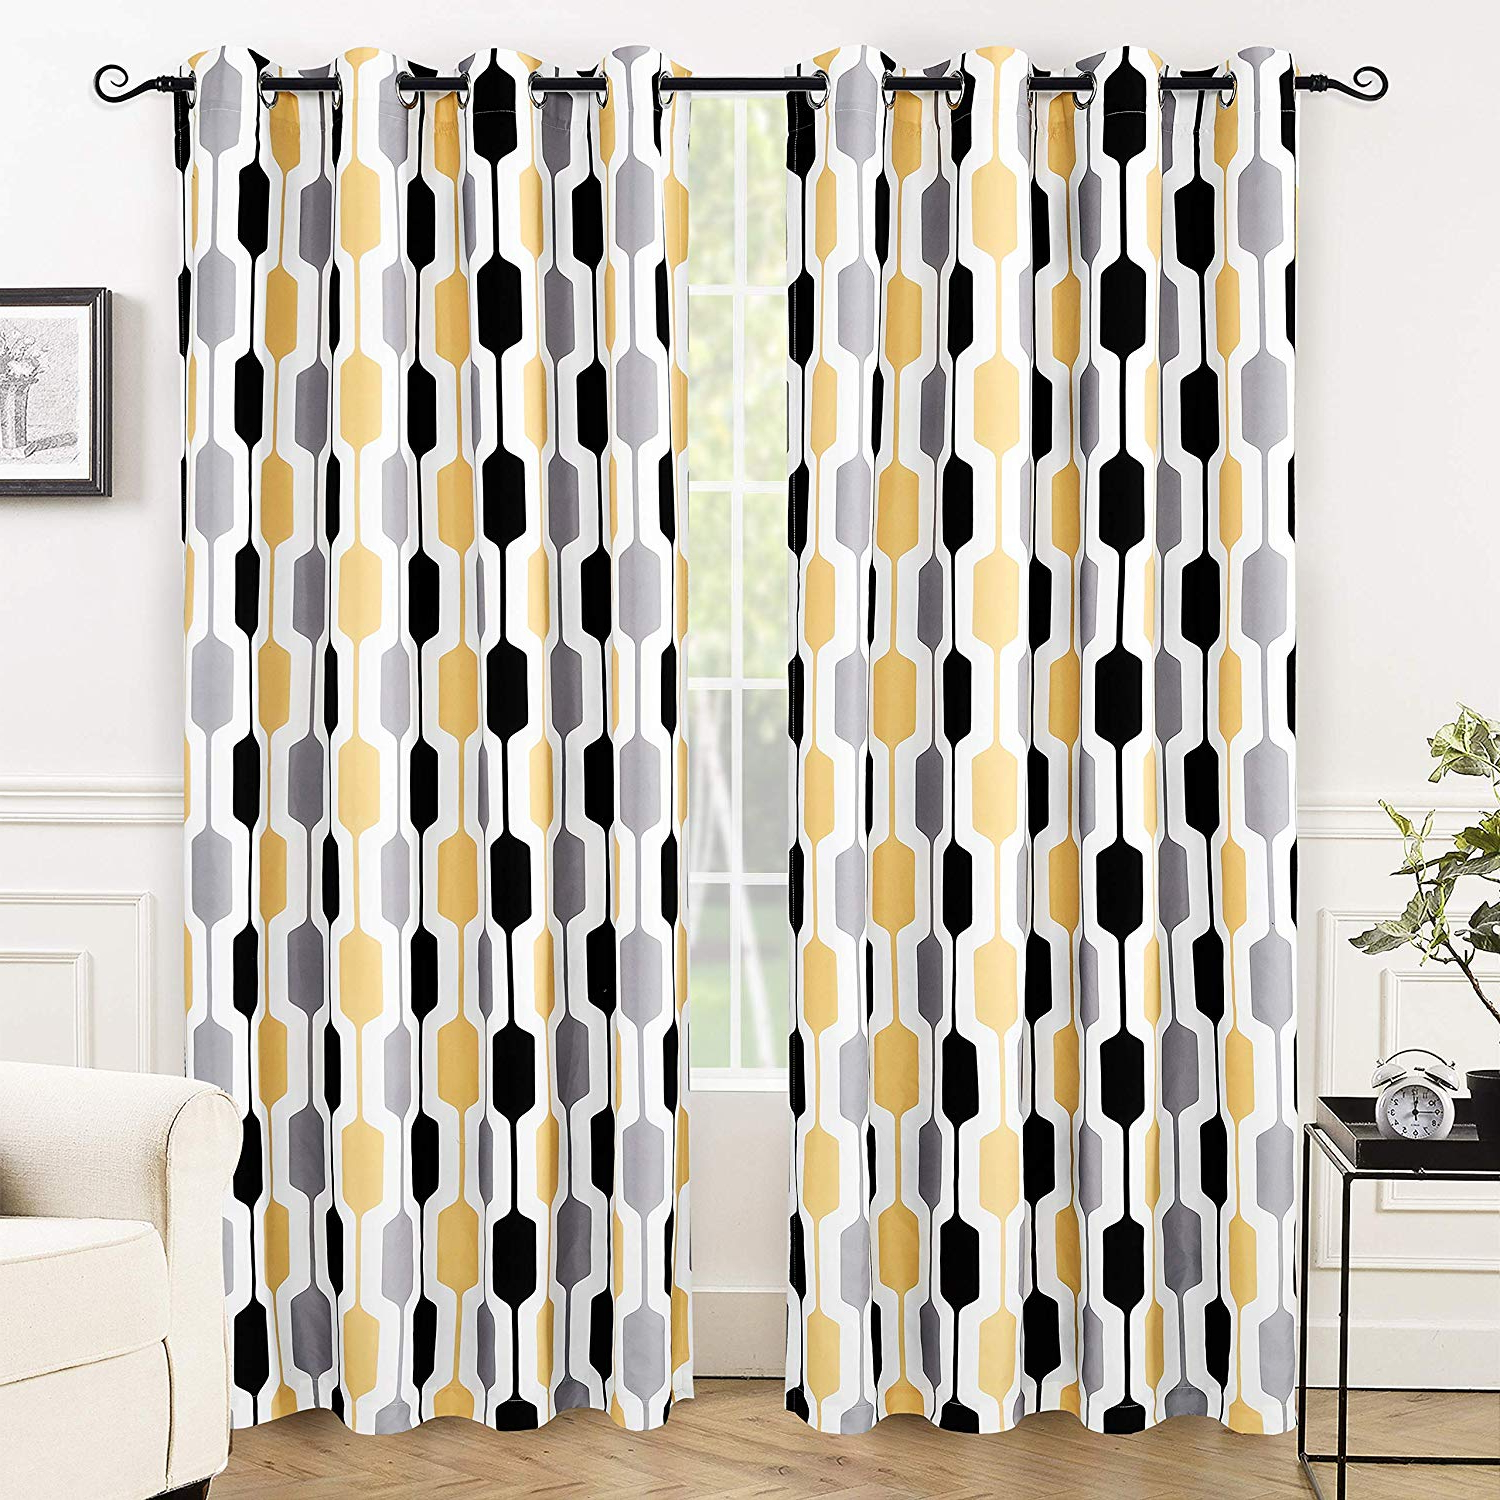 Driftaway Riley Geo Room Darkening Blackout Thermal Insulated Grommet Lined Window Curtains Mid Century Geometric Pattern 2 Layers 2 Panels Each 52 Regarding 2021 Riley Kids Bedroom Blackout Grommet Curtain Panels (View 15 of 20)